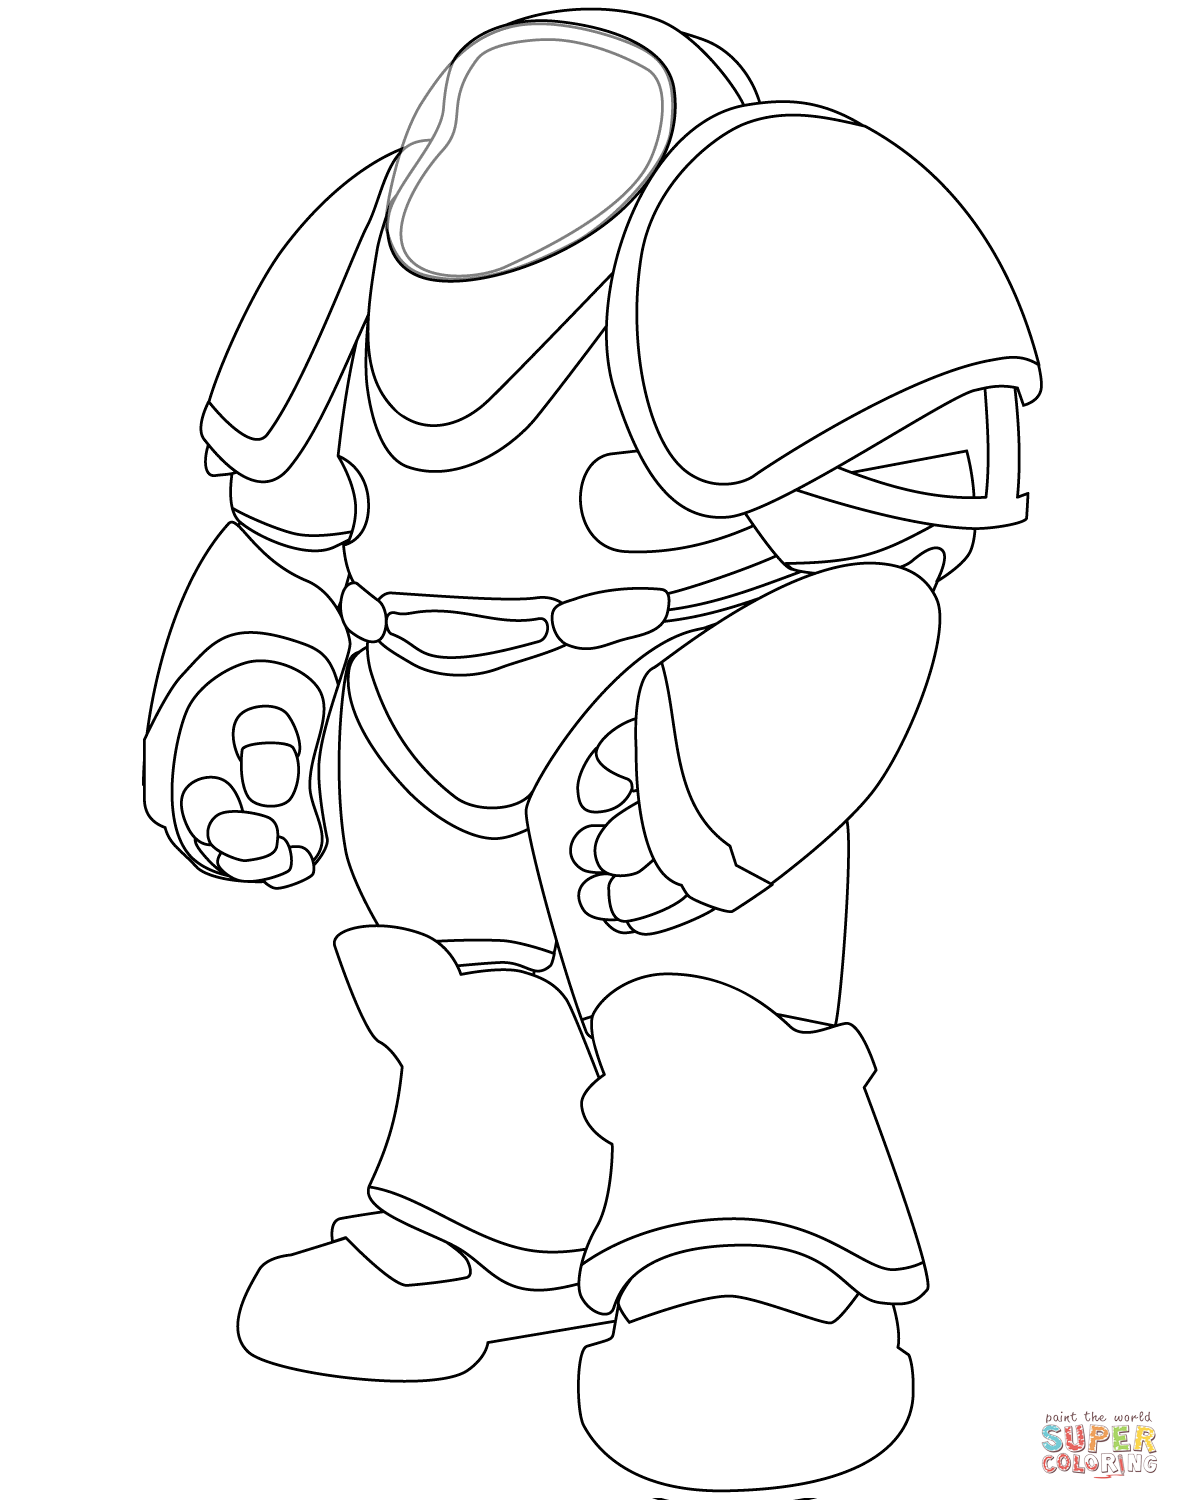 Santa Suit Coloring Page With Space Free Printable Pages